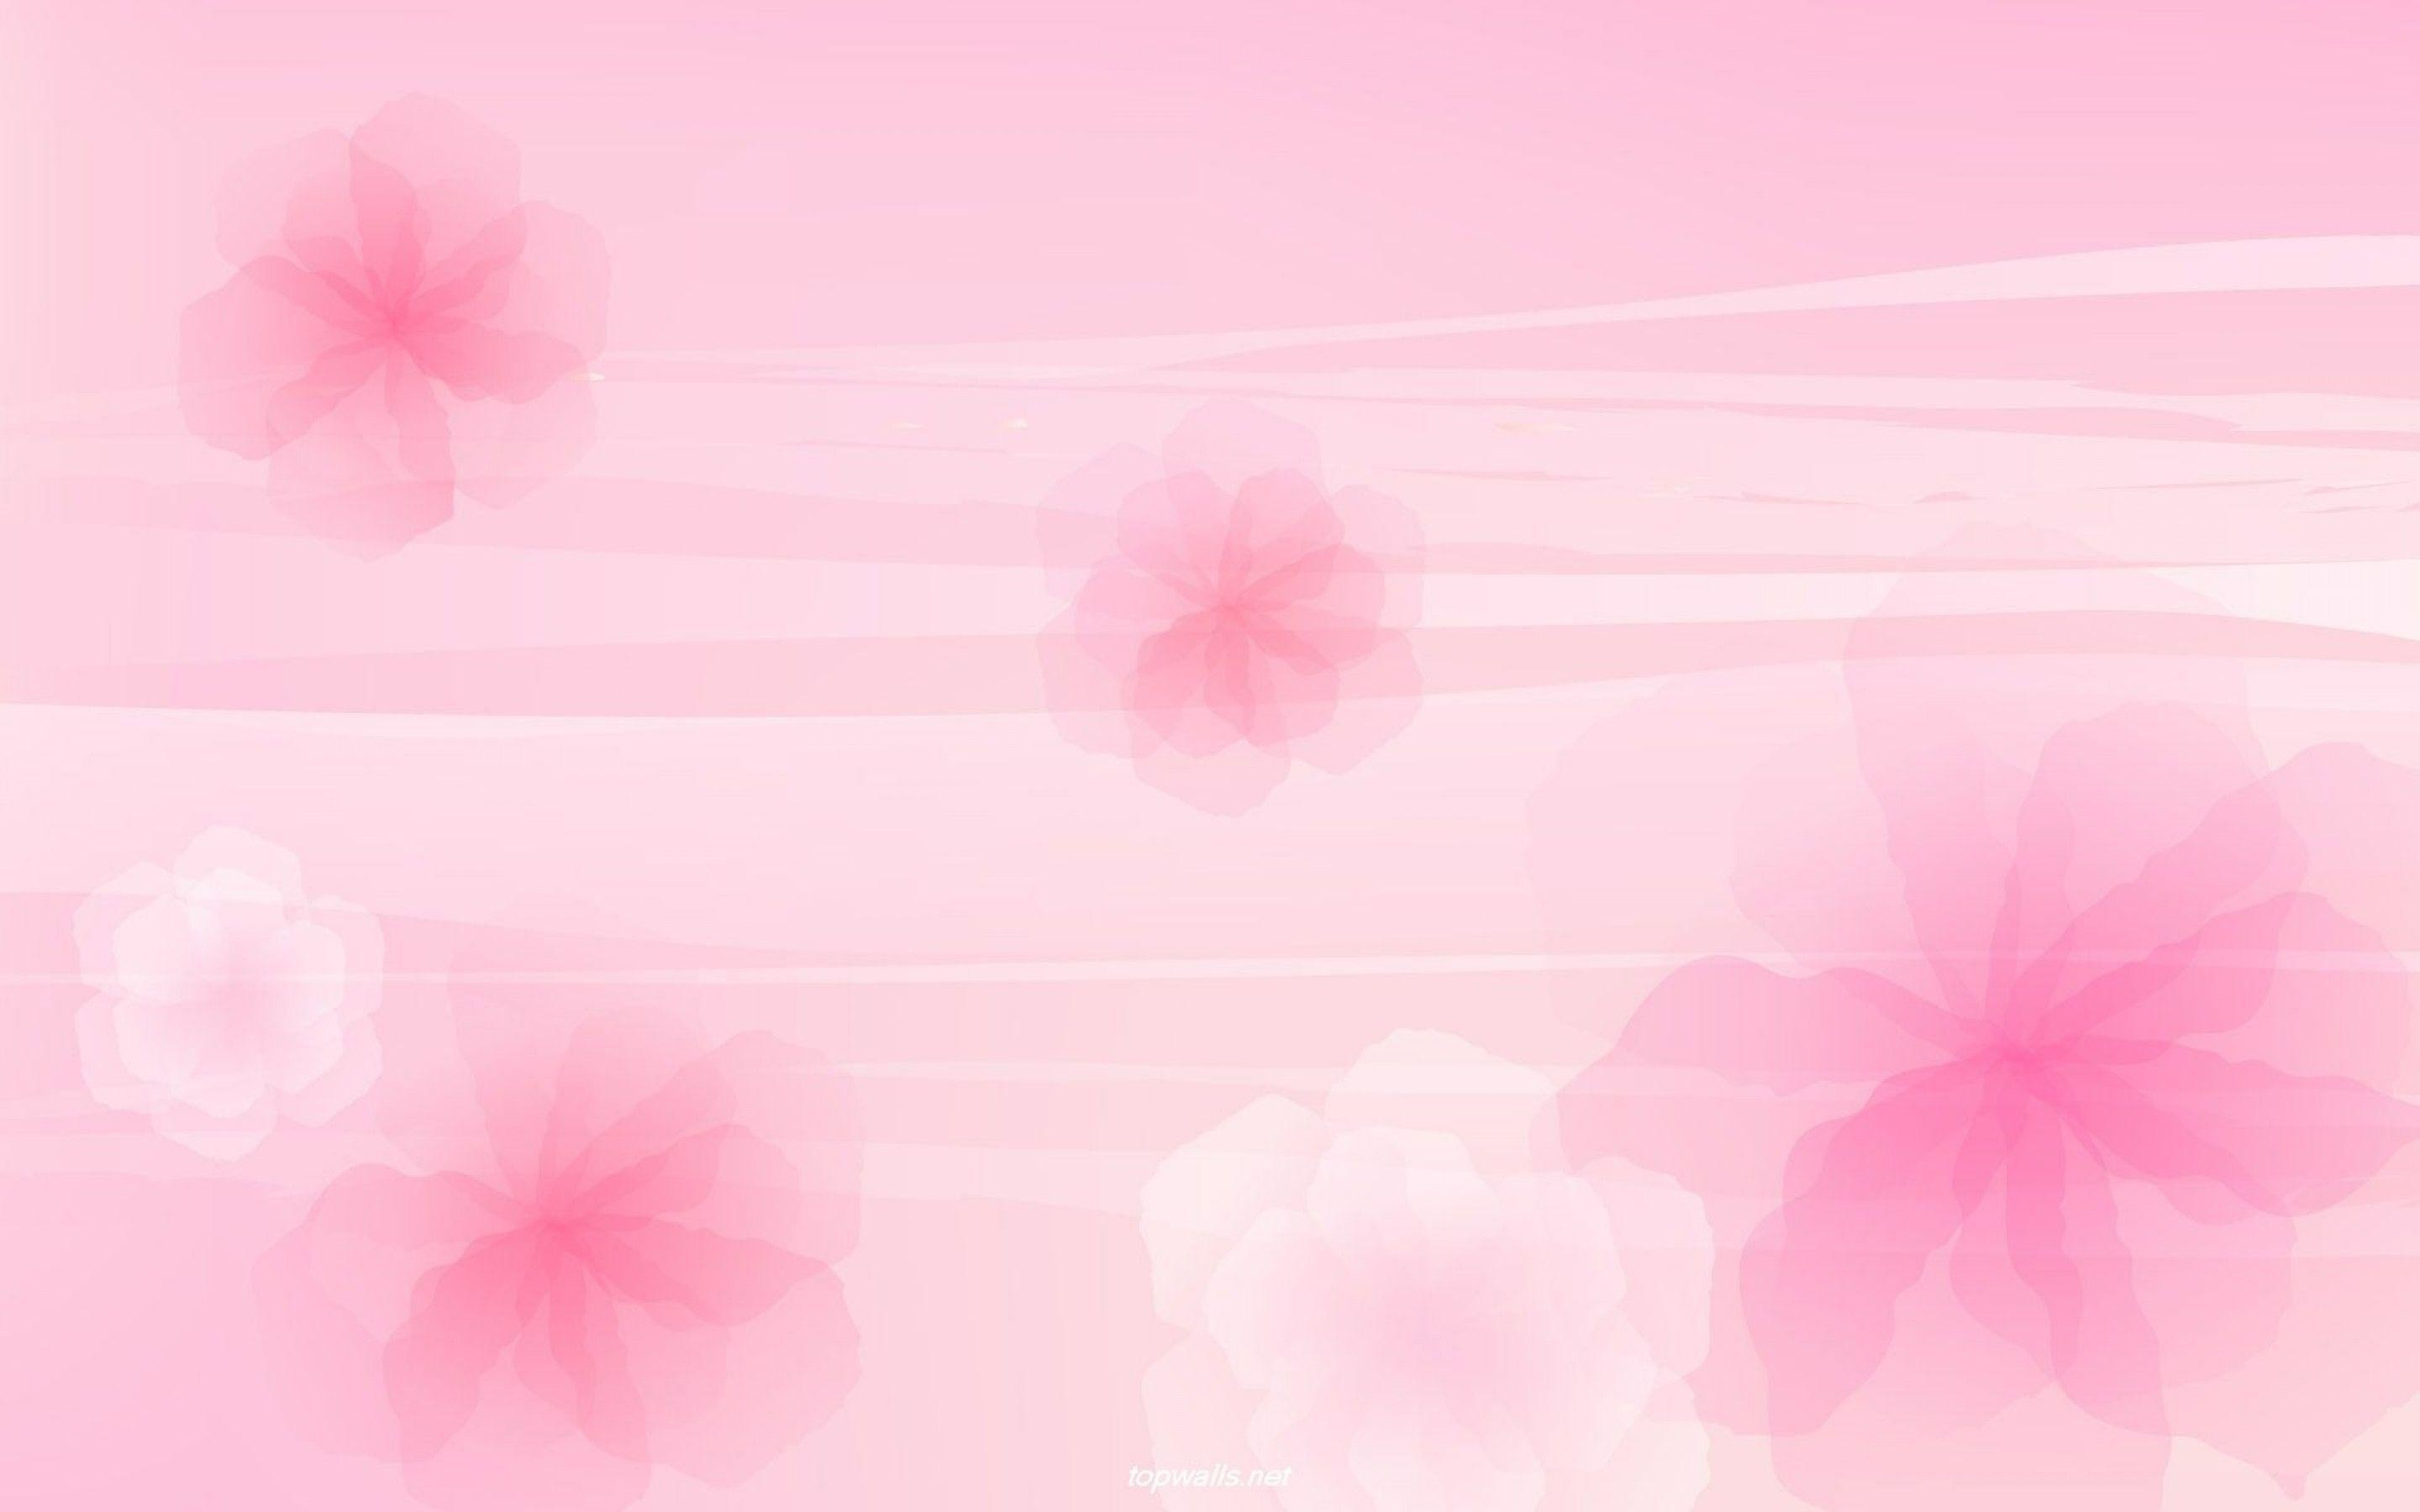 Light Pink Flower Wallpaper (54  images) for Light Pink Flower Wallpaper  53kxo